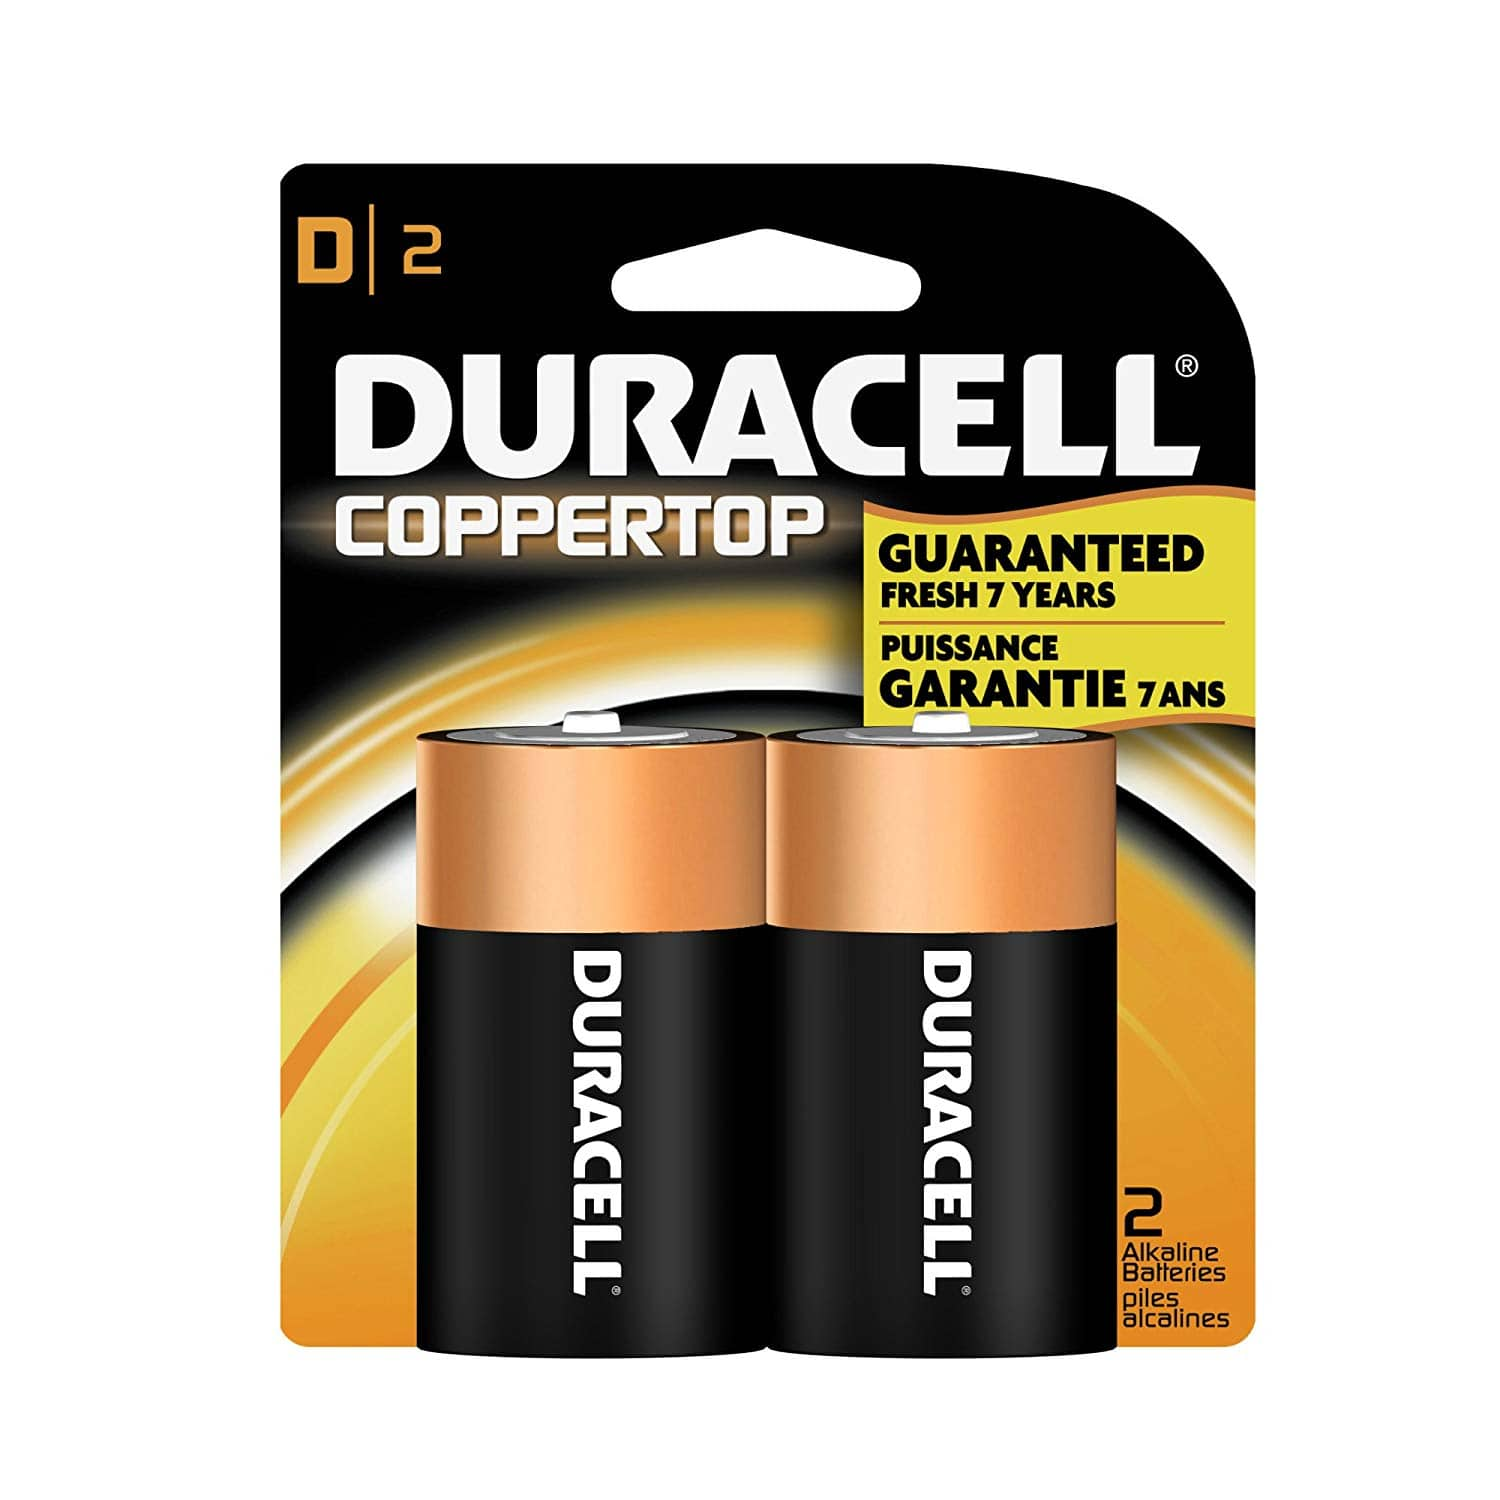 Duracell D Batteries - 2 Count - $2.87 at Amazon